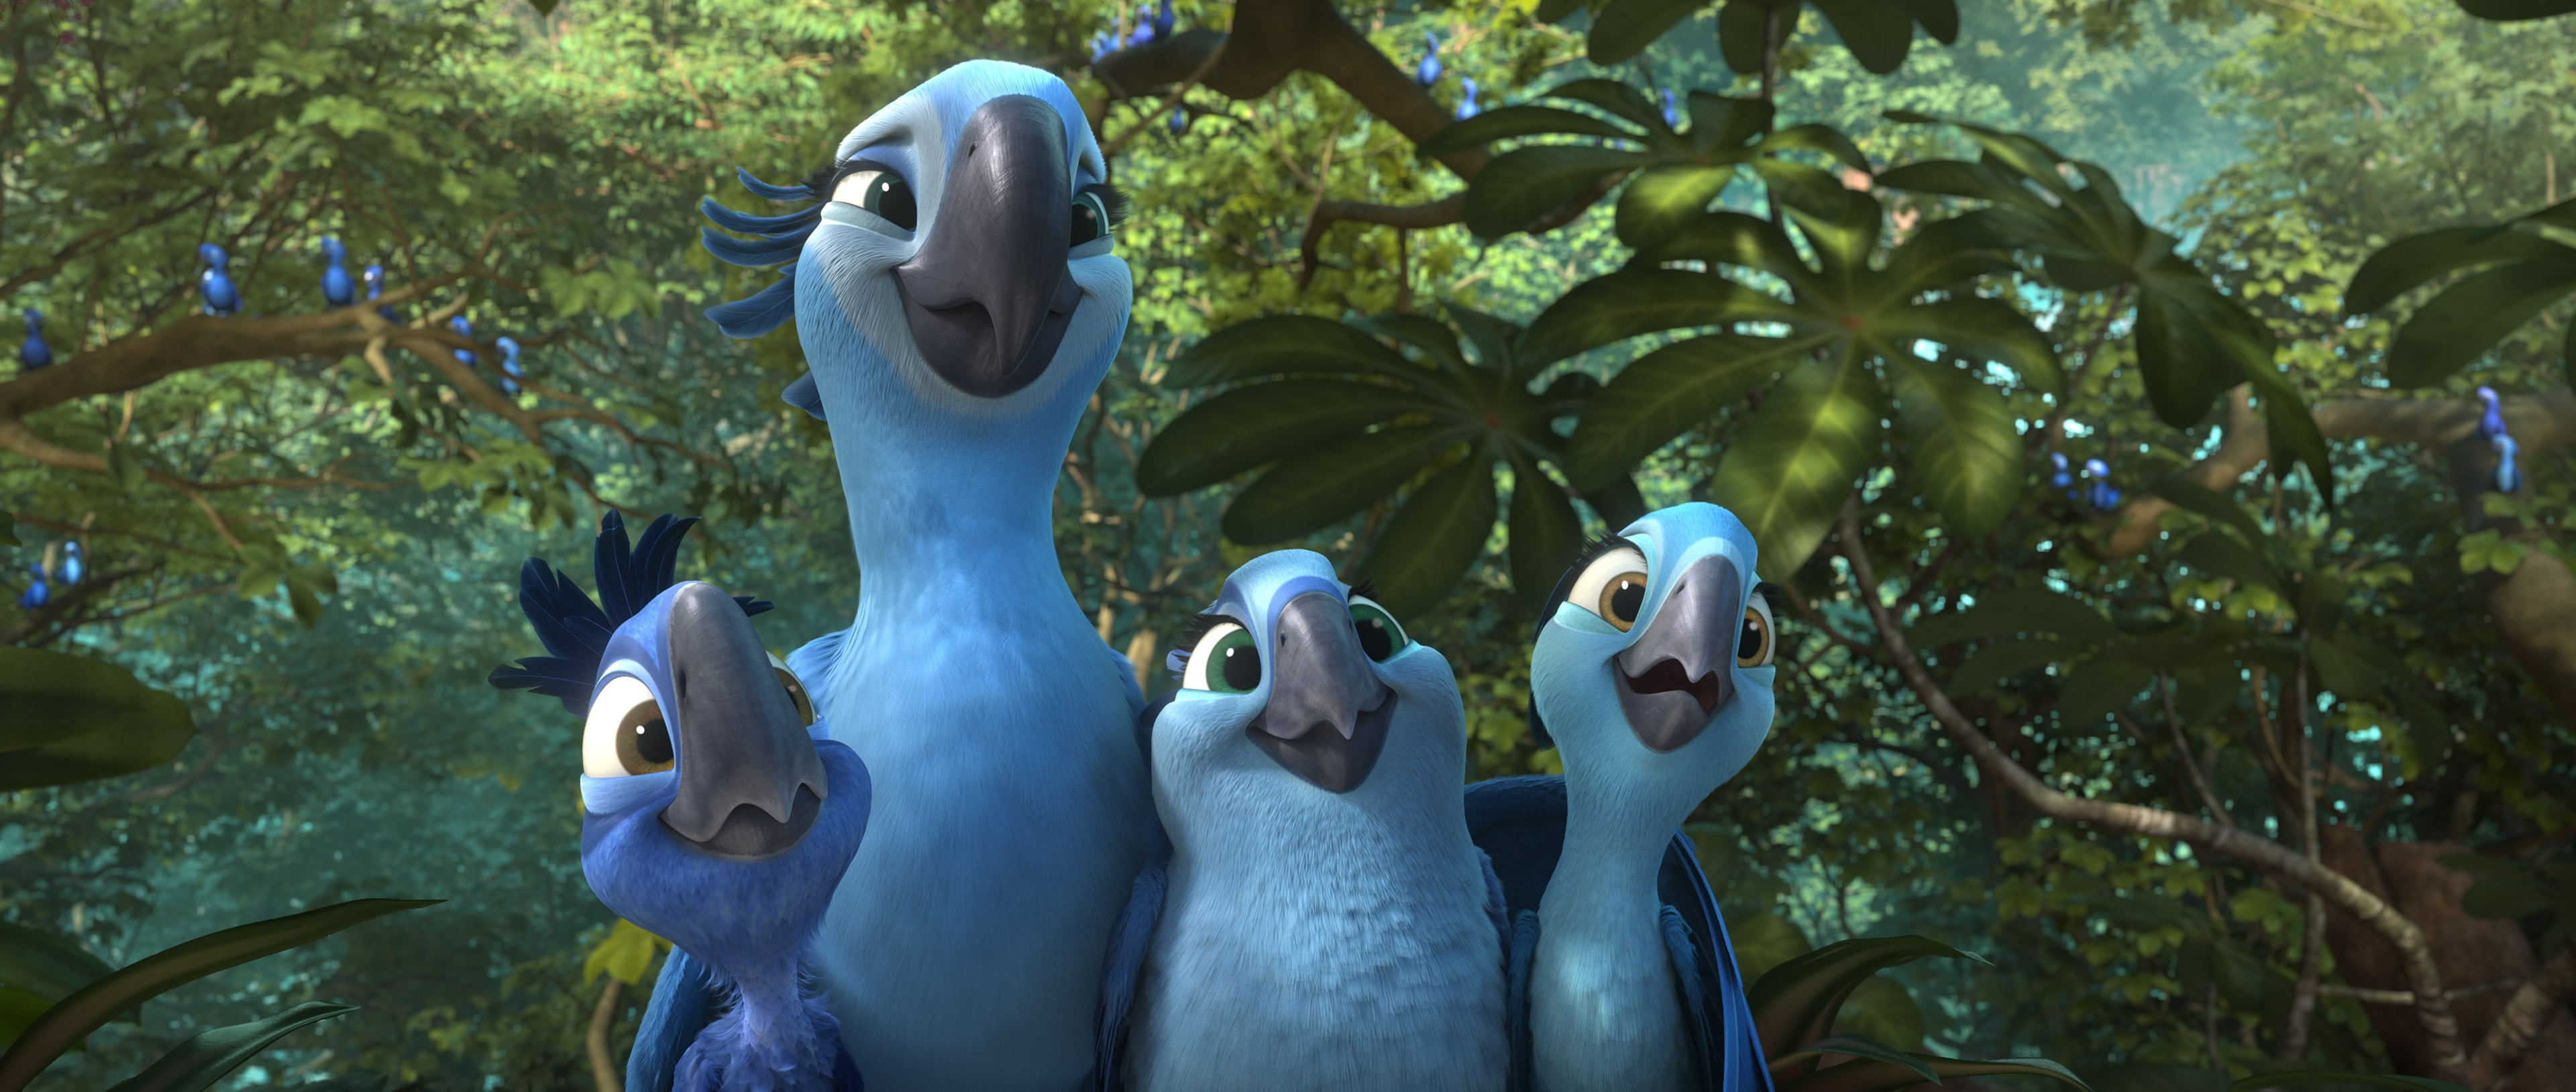 Rio 2 Wallpapers hd